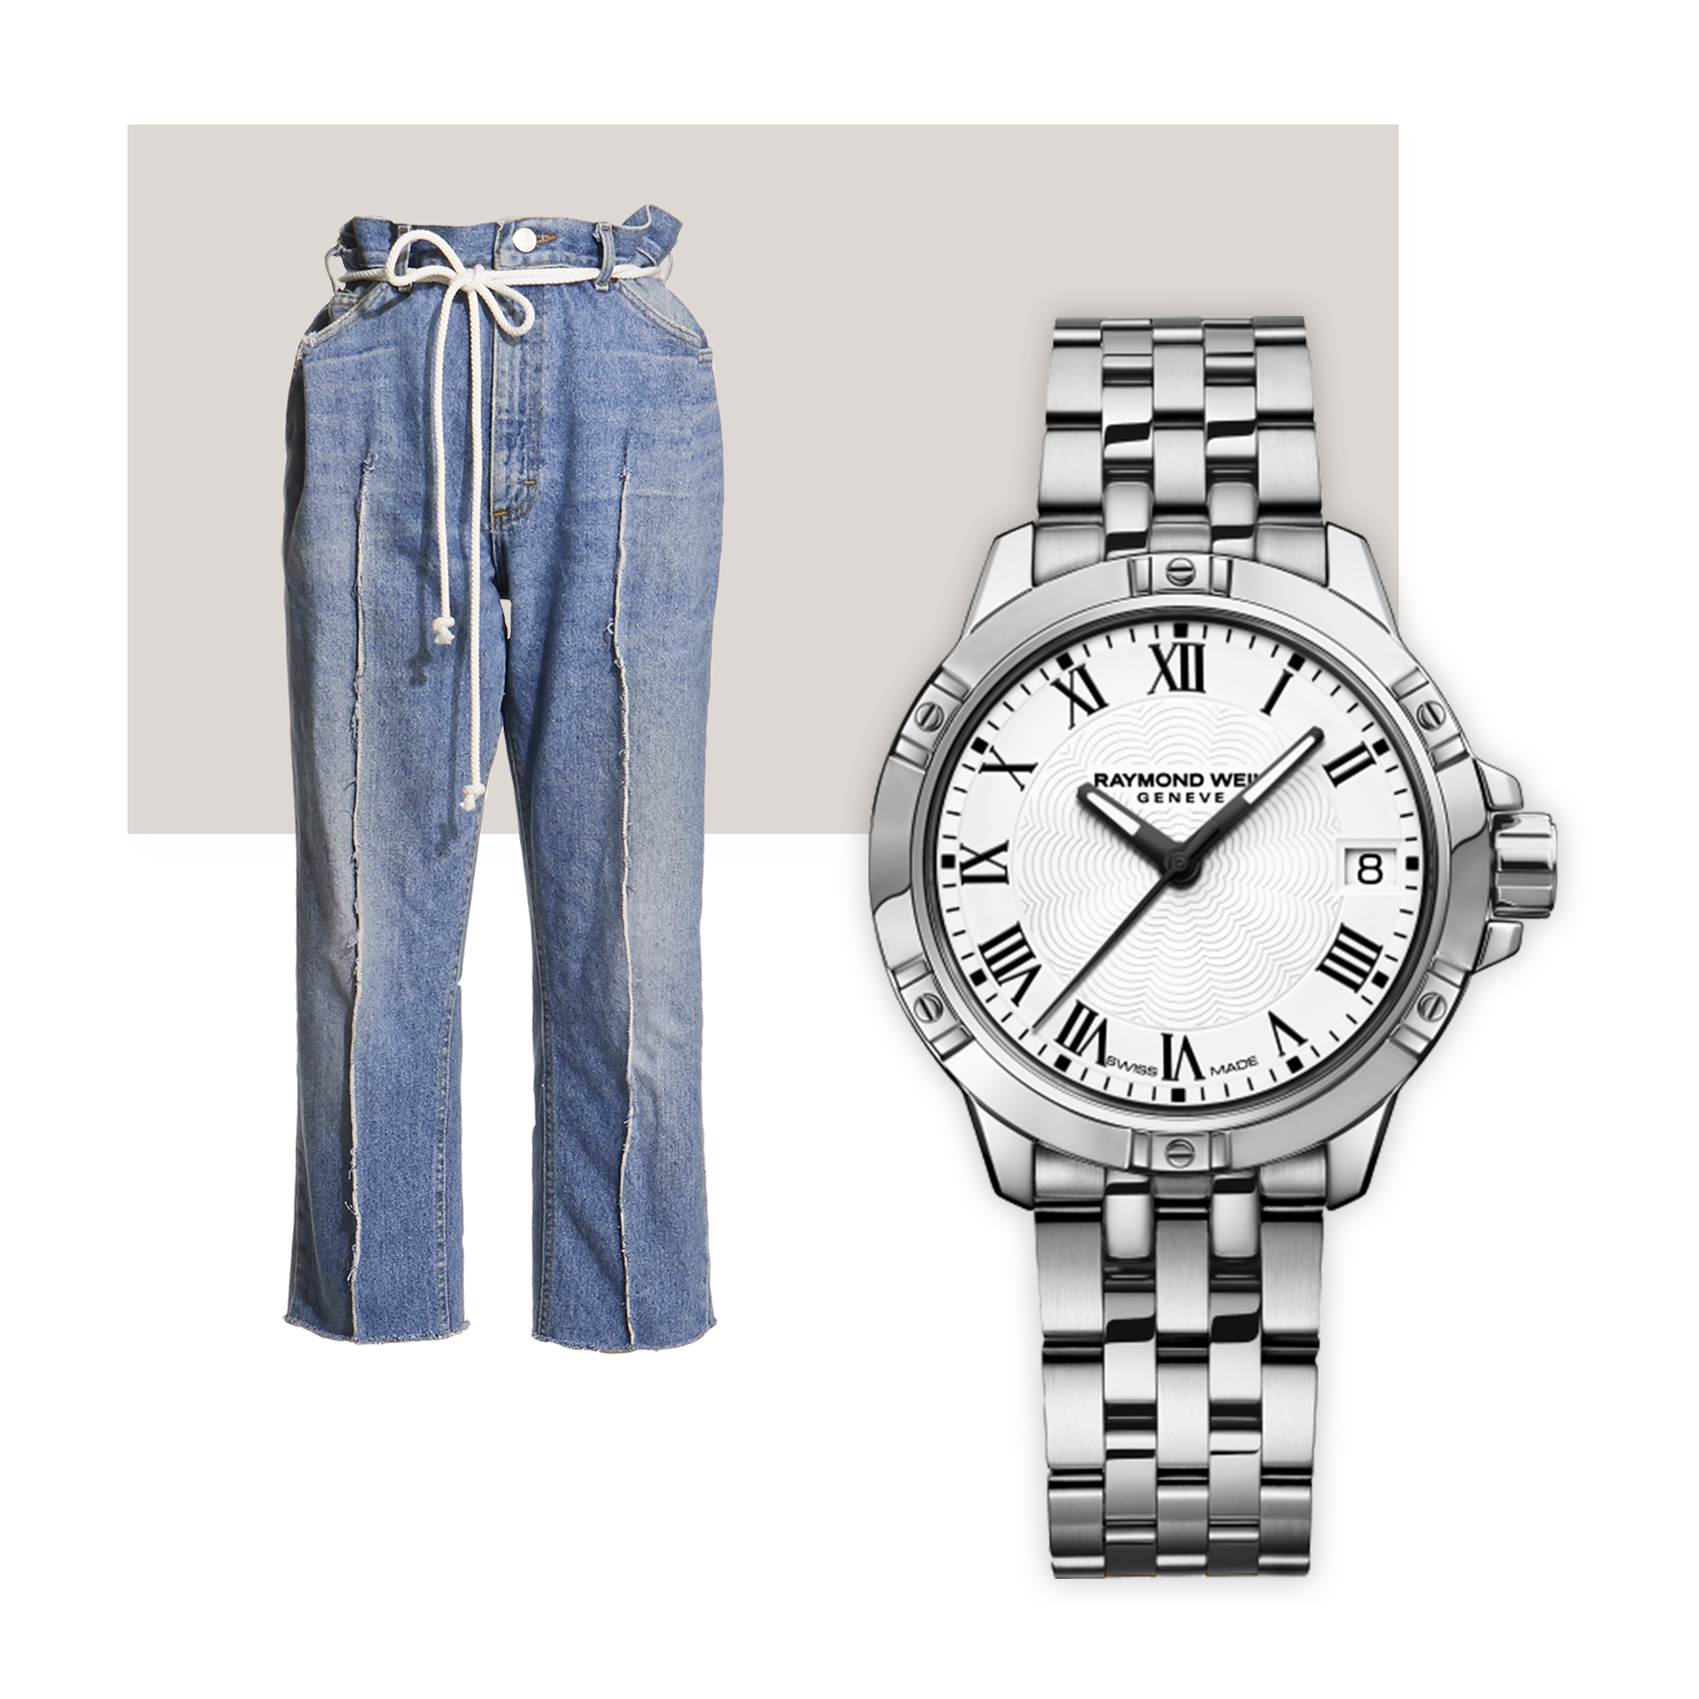 Ji Oh Denim & Raymond Weil Tango Quartz Classic Date Watch - Designer Ji Oh breathed new life into a pair of vintage jeans with the addition of a cinched paper bag waist and a frayed front seam as part of her sustainable fashion mission –a refreshing reminder in the throes of sale season. Pair with a Raymond Weil Tango, a wear-everywhere staple for years to come.Ji Oh jeans, $175; jiohny.com, Raymond Weil watch, $895; troverie.com